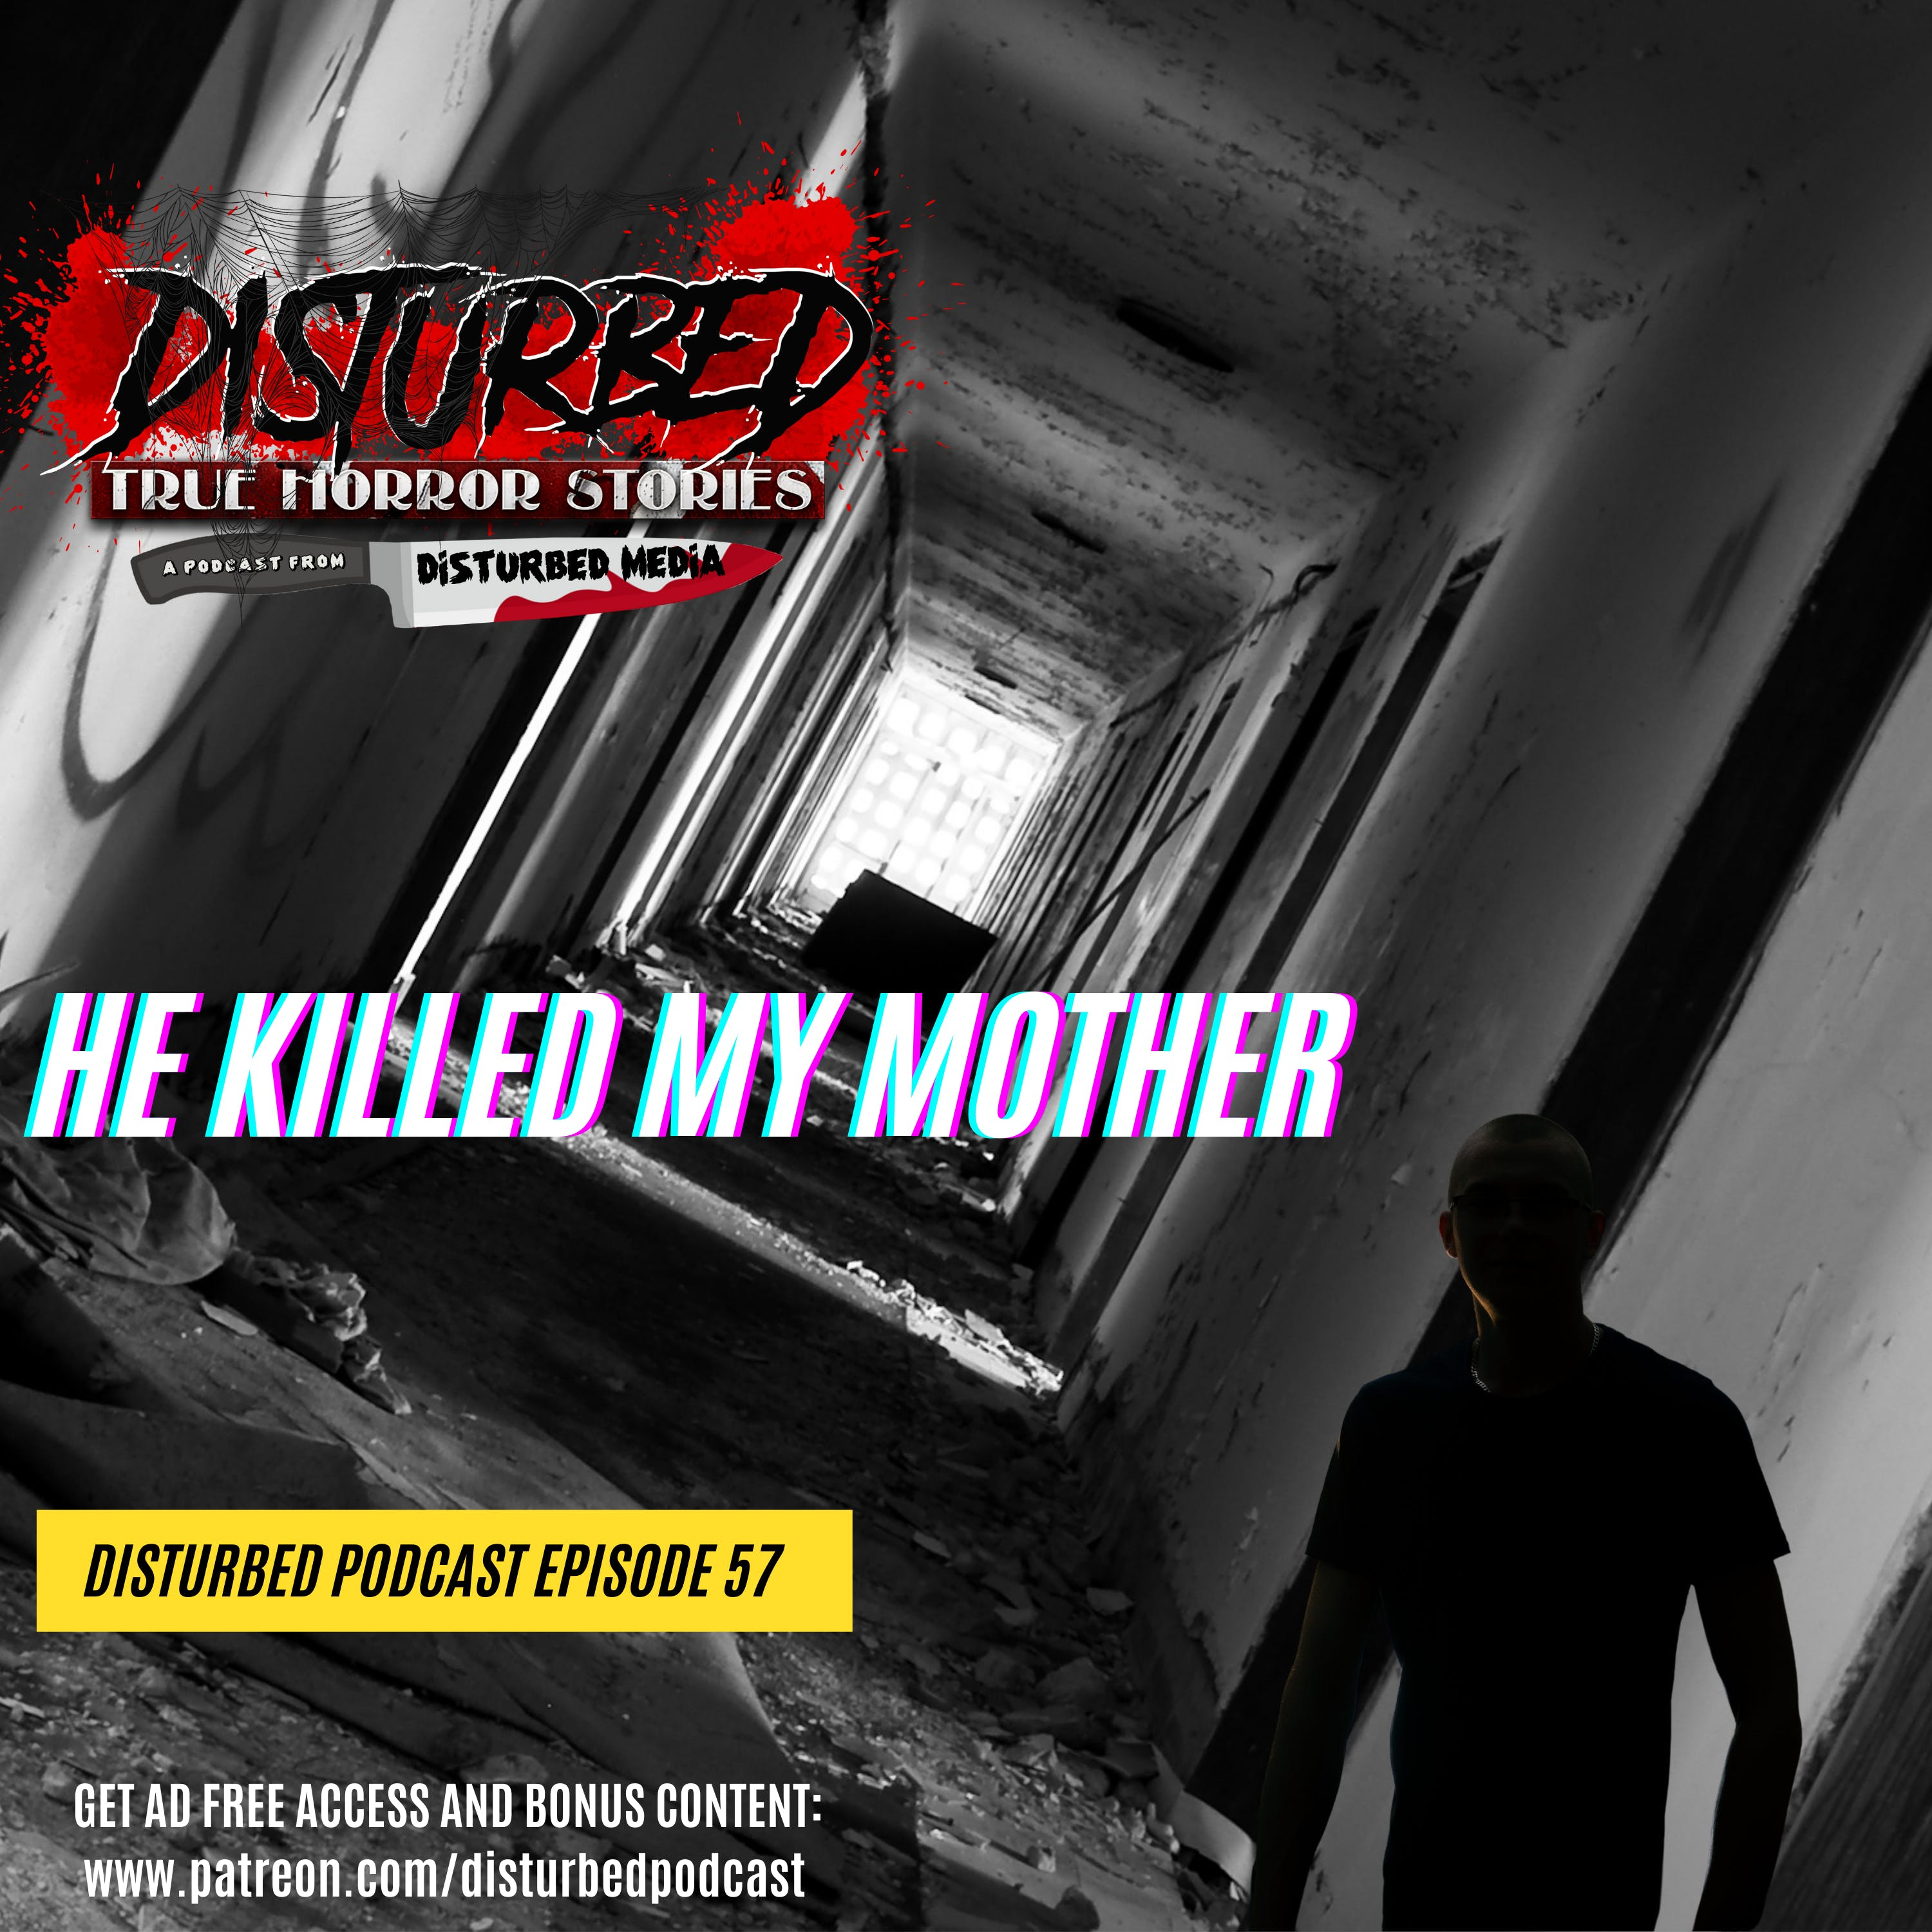 He Killed My Mother